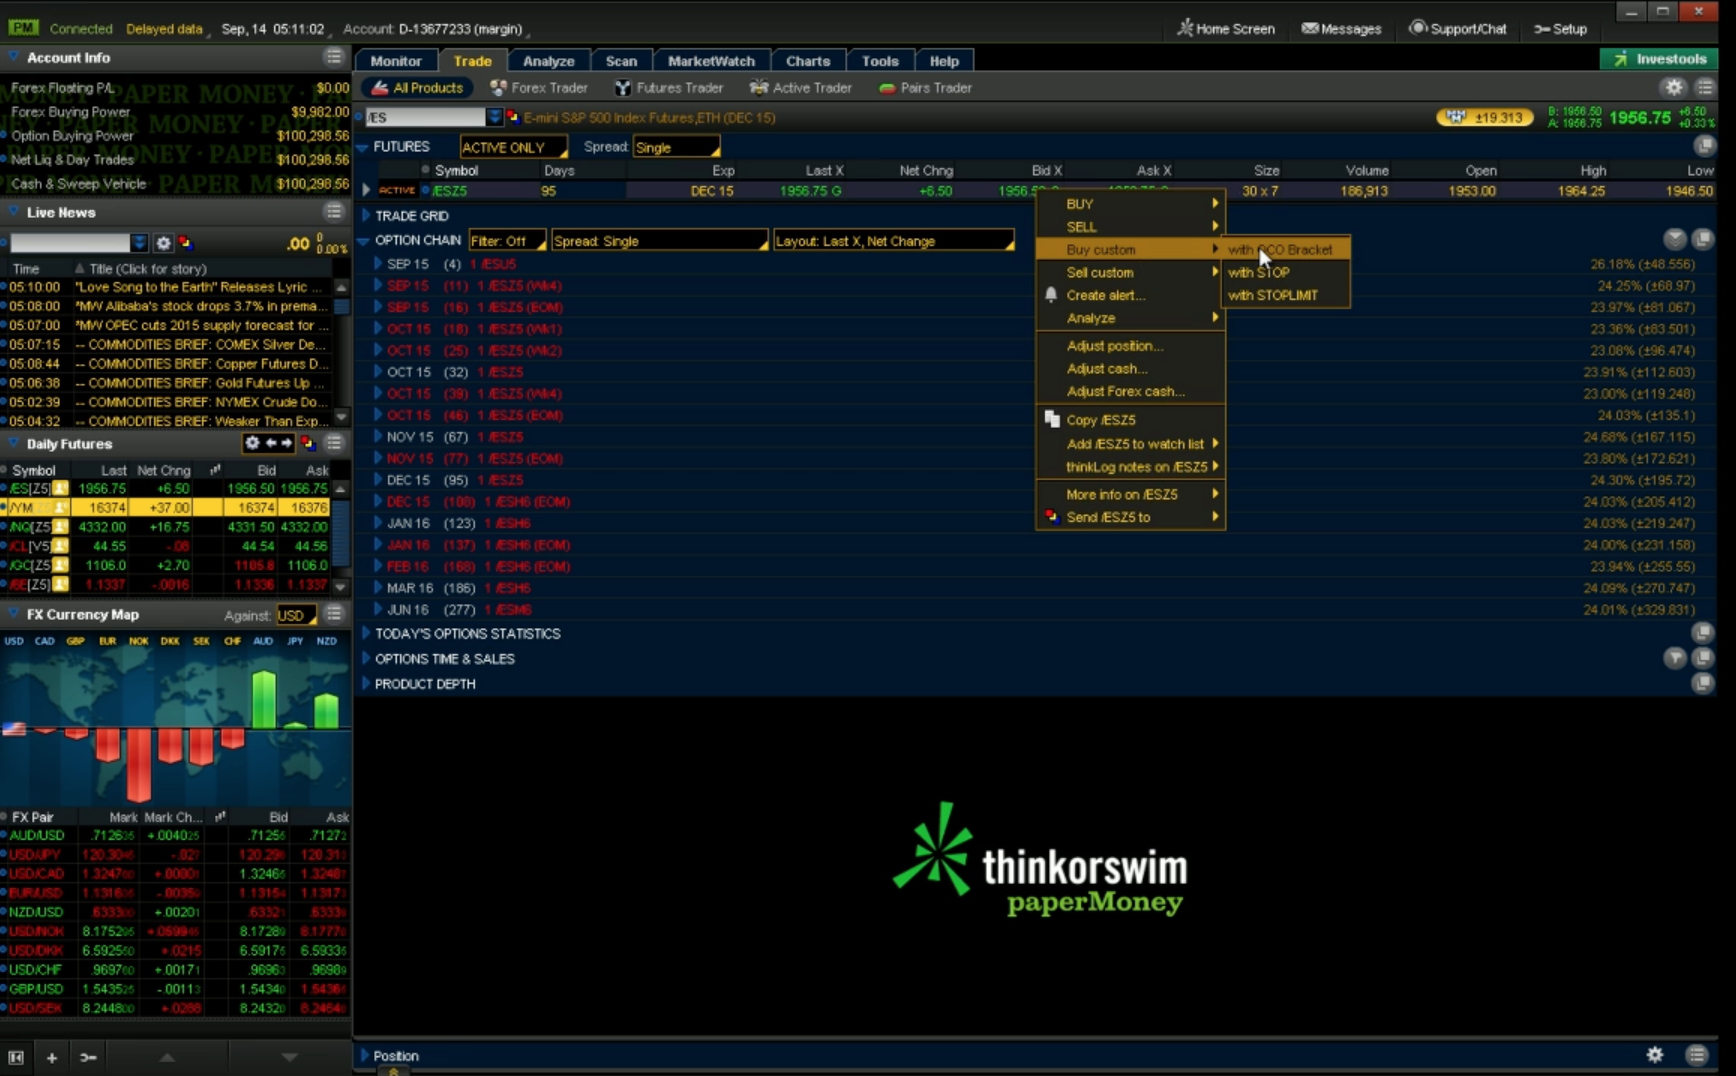 How to Place OCO Orders on the ThinkorSwim Platform